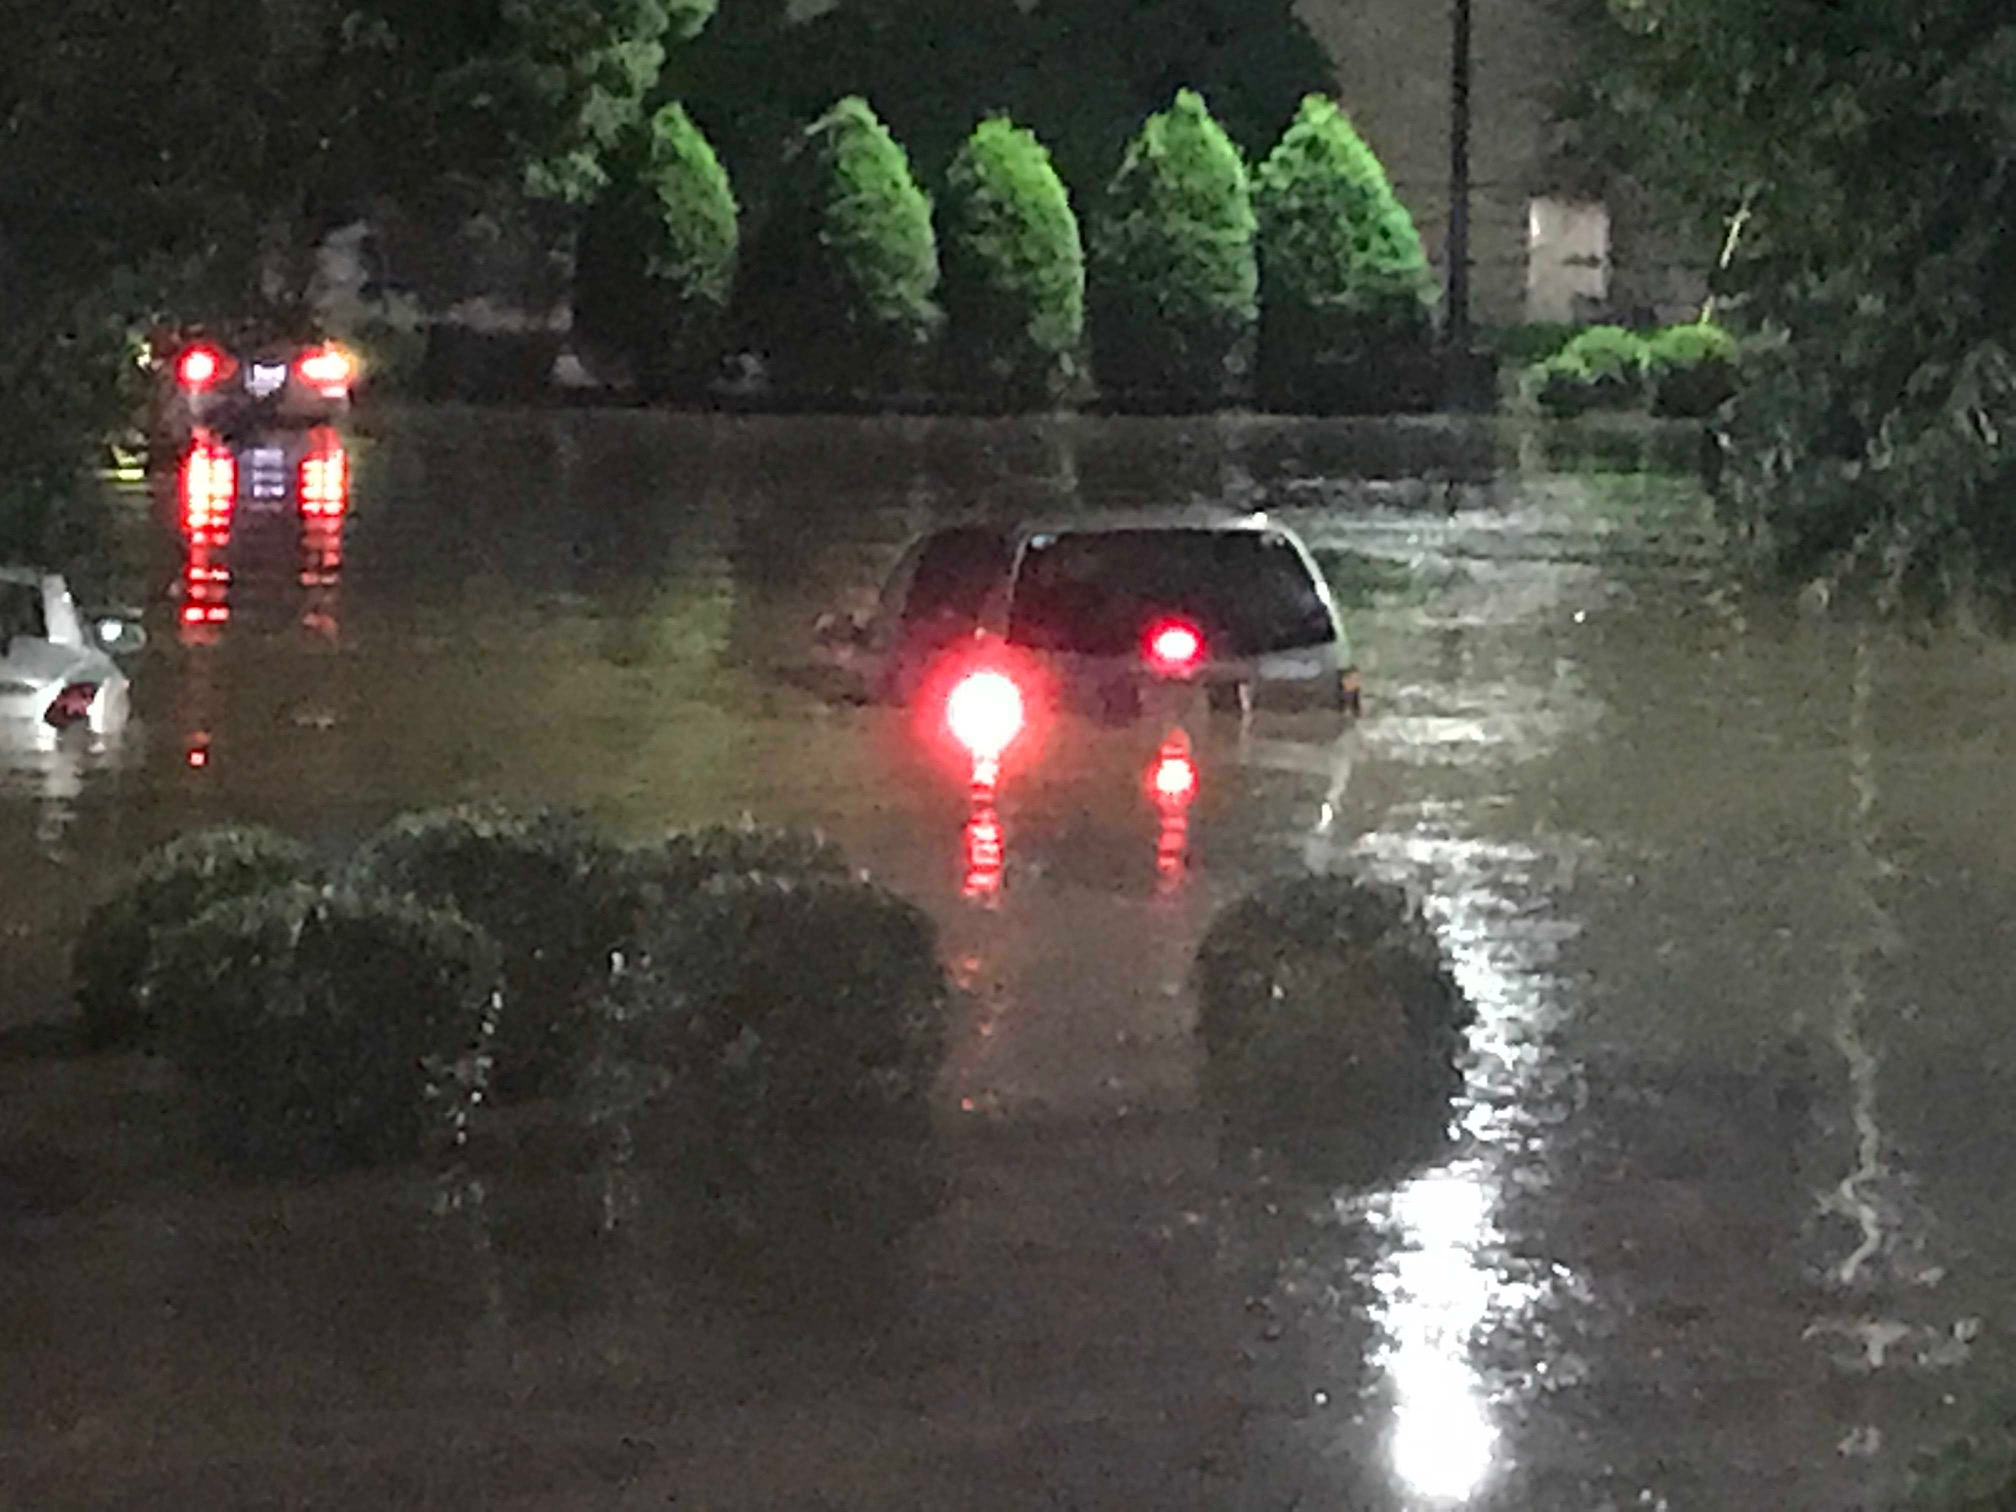 <div class='meta'><div class='origin-logo' data-origin='WTVD'></div><span class='caption-text' data-credit='Robert Judson'>Flooding at Crabtree Valley Mall.</span></div>